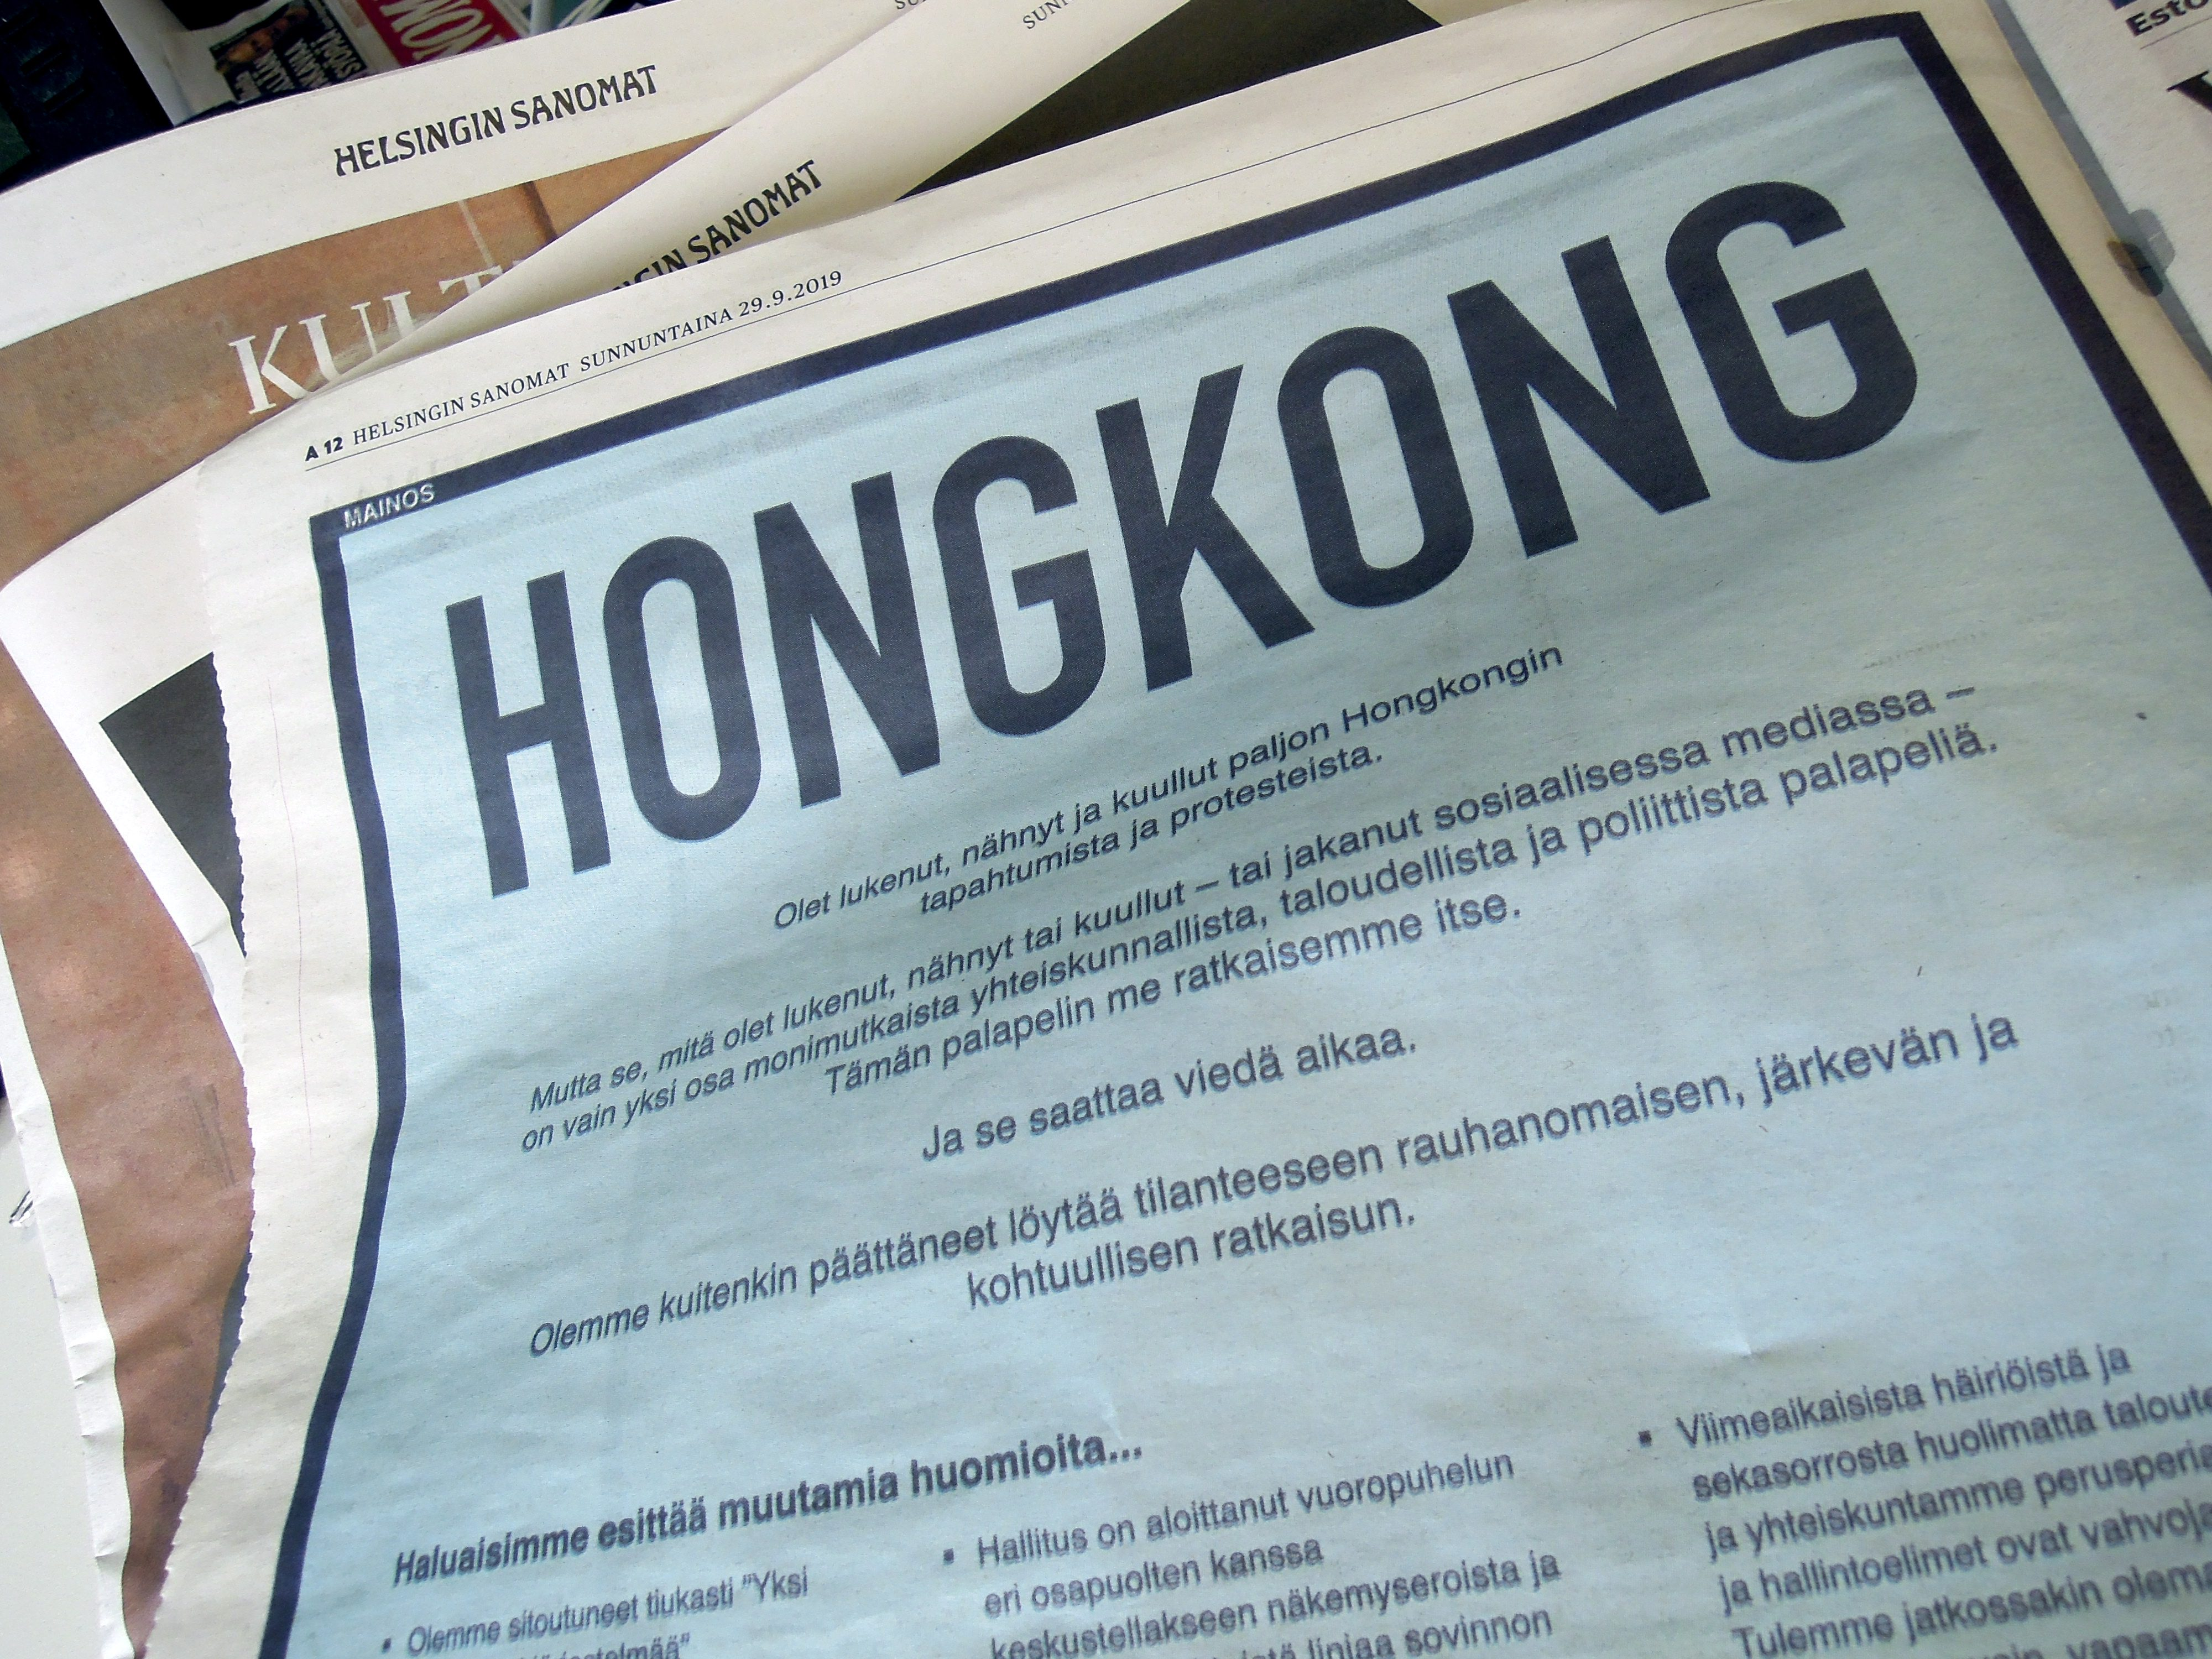 Helsingin Sanomat on Sunday published a full-page ad for the Hong Kong Special Administrative Region (SAR), allowing China to express its views on the situation in Hong Kong. (Ritva Siltalahti – Lehtikuva)